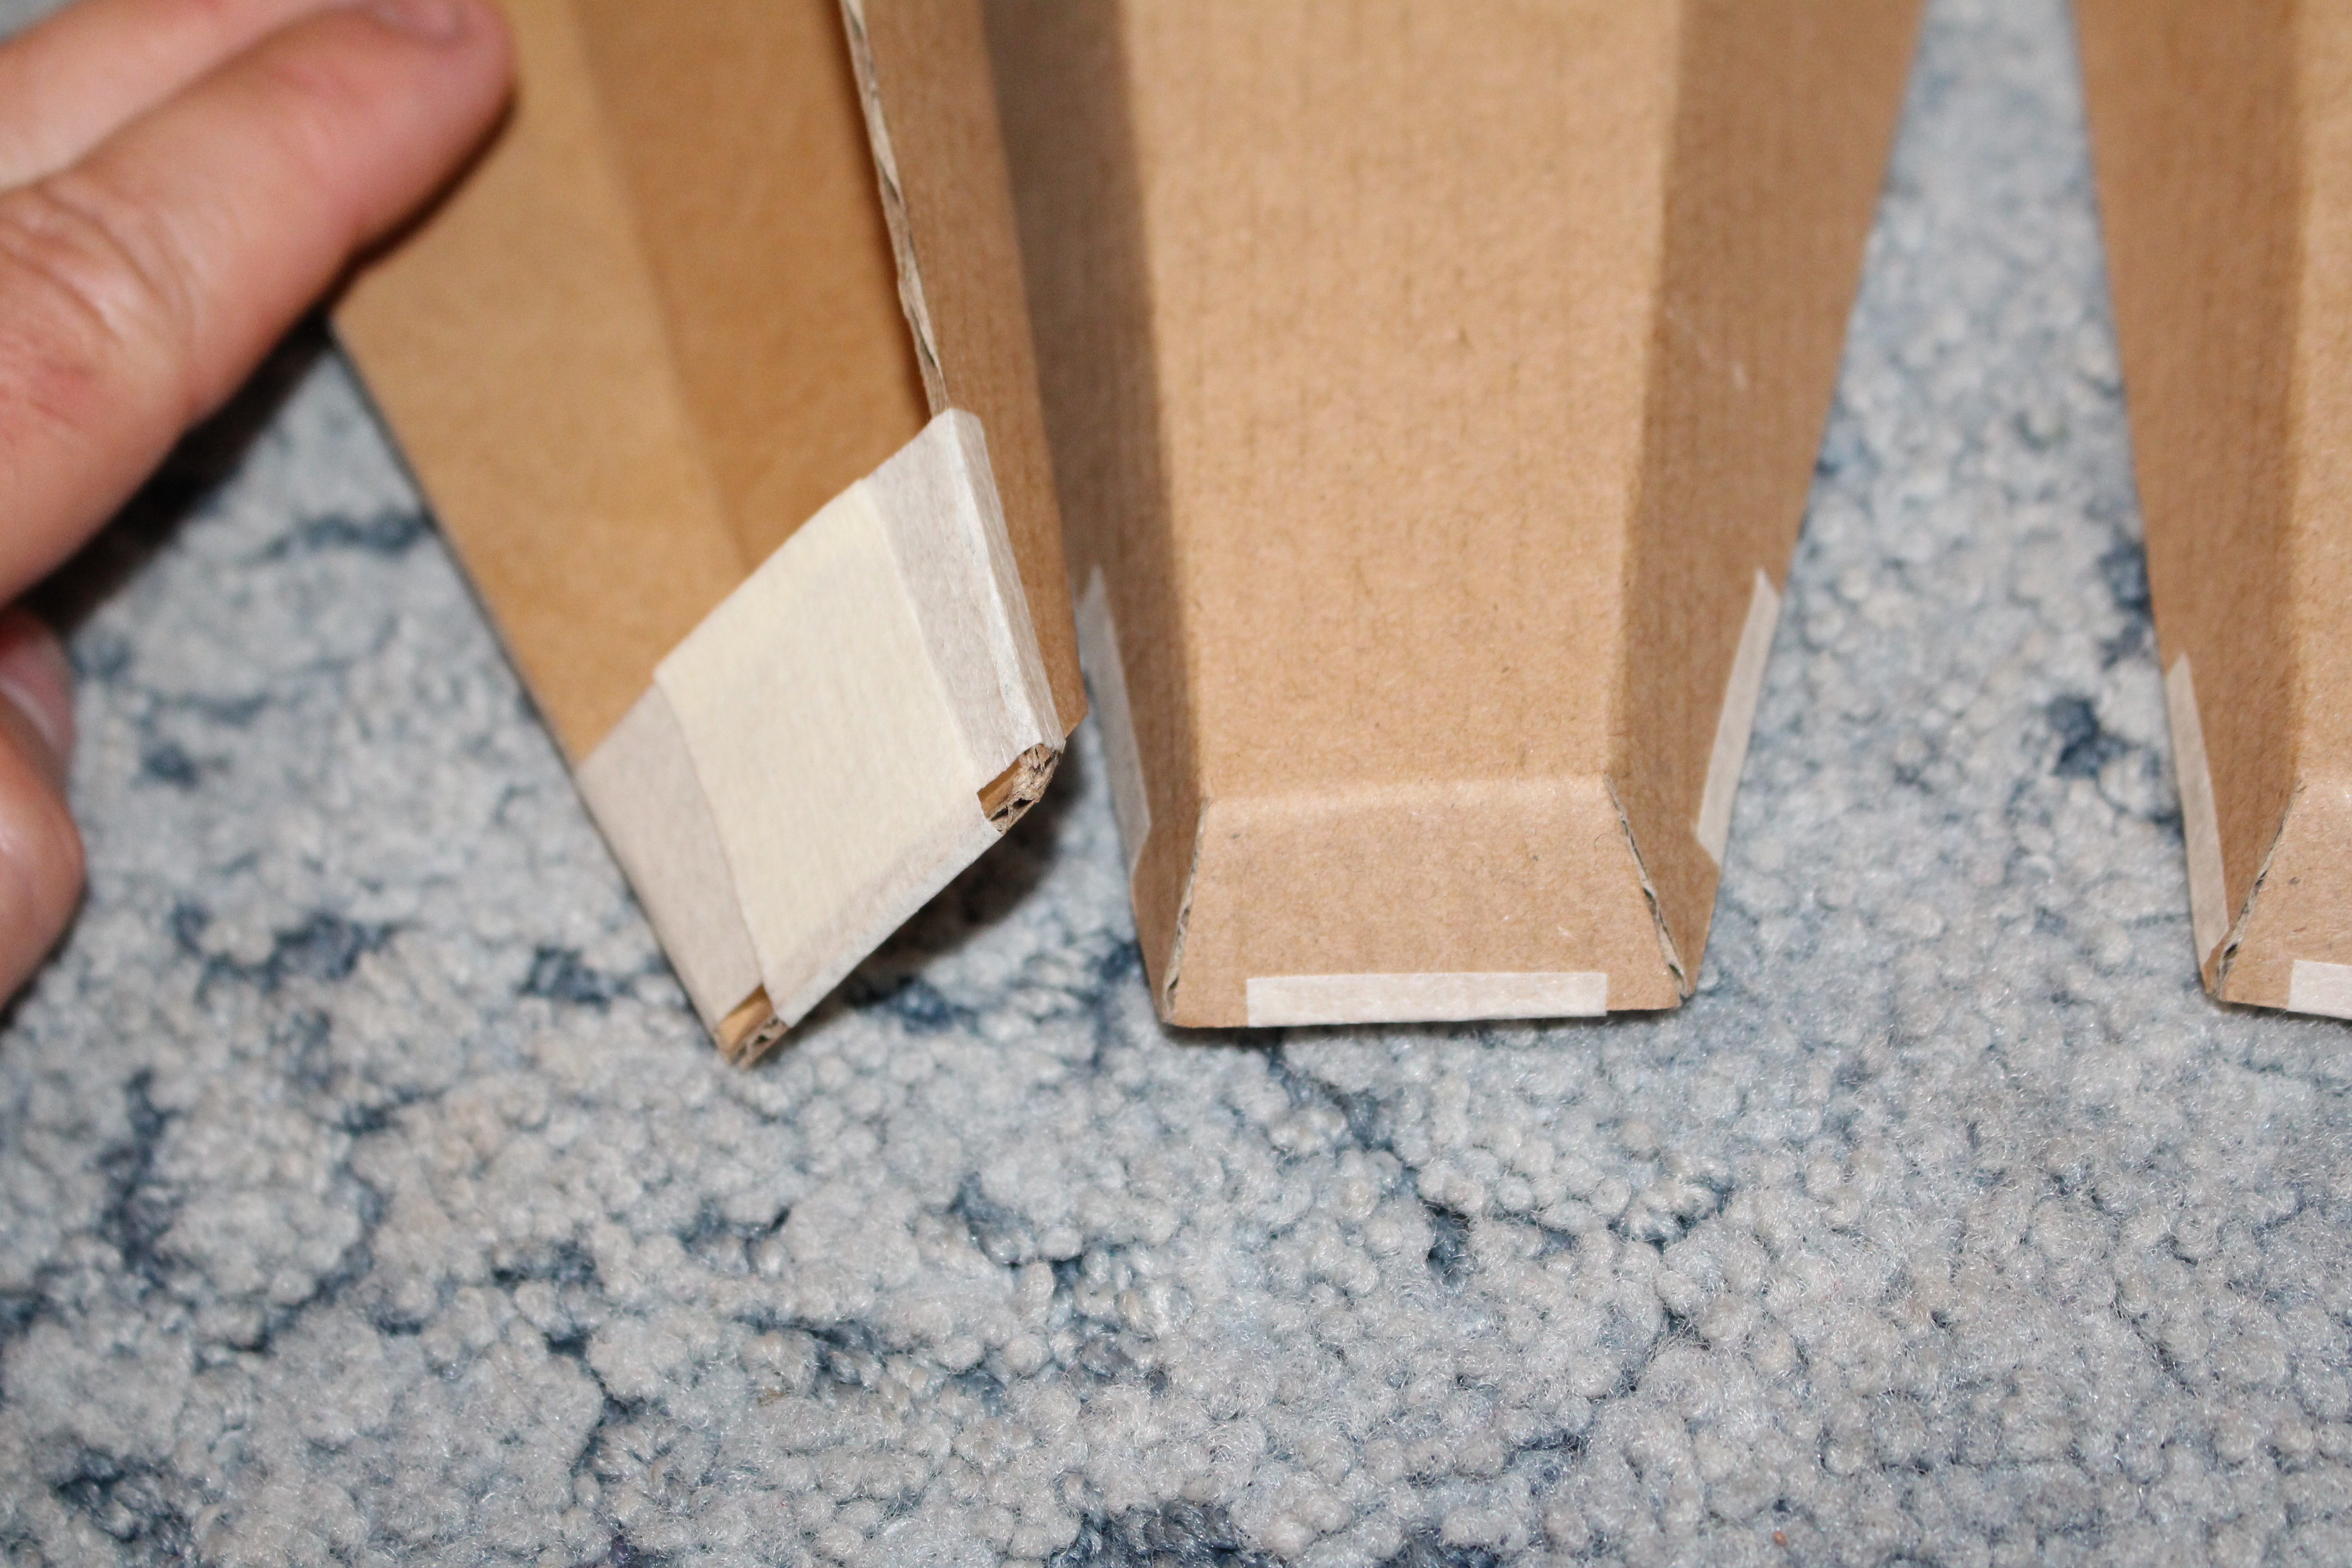 Picture of Designing the Shape and Cutting Out the Cardboard.